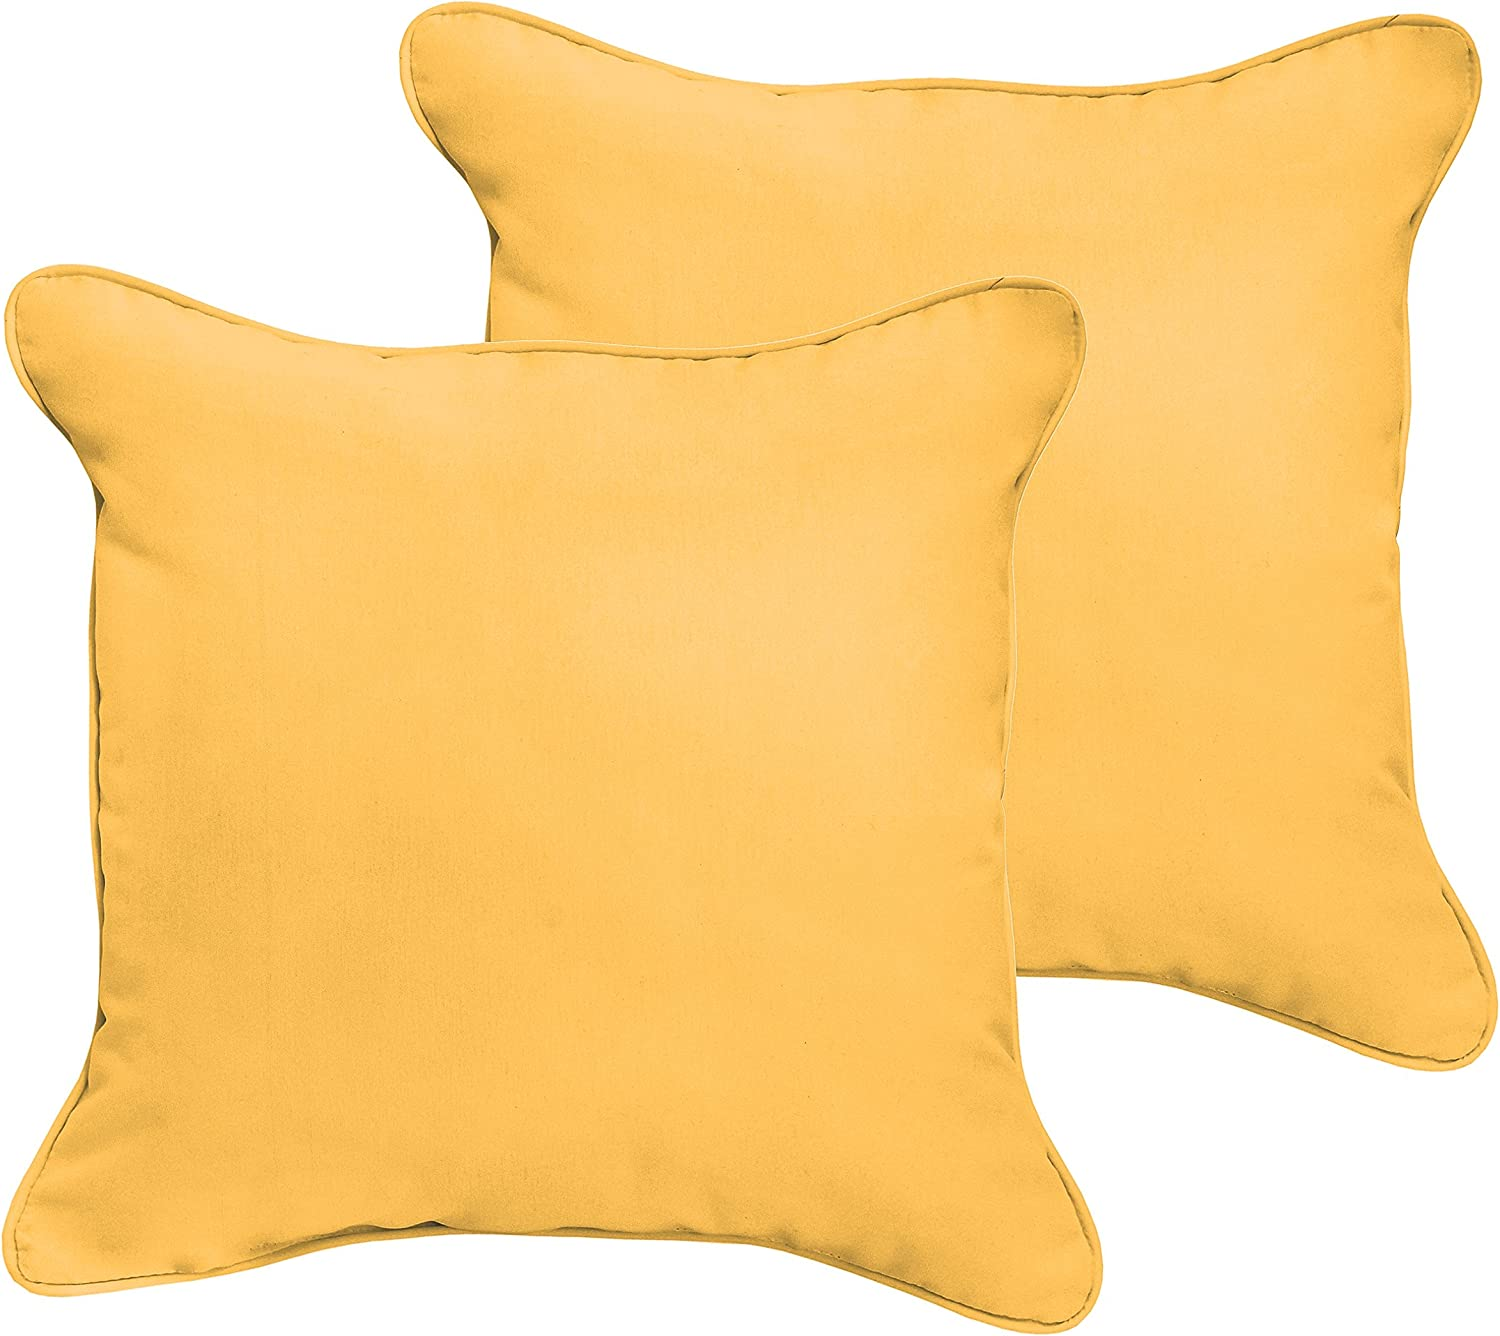 Mozaic Company Amps100033 Indoor Outdoor Sunbrella Square Pillow With Corded Edges Set Of 2 20 X 20 Sunflower Yellow Garden Outdoor